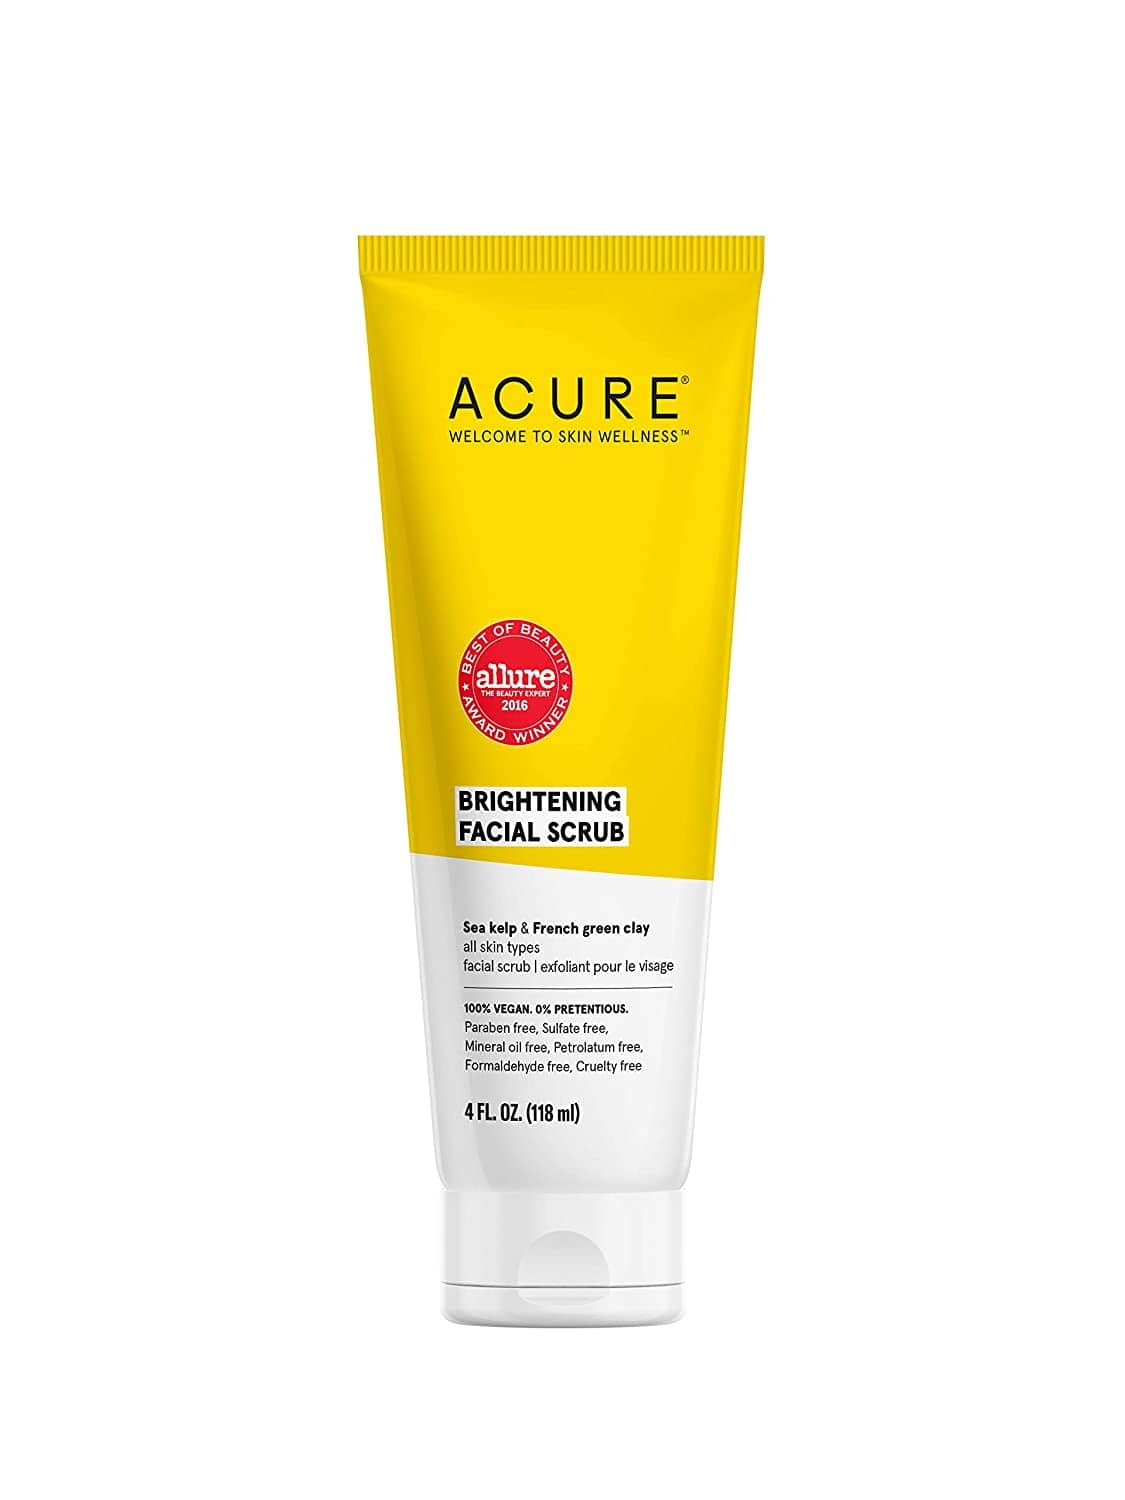 4 Fl Oz  Acure Brightening Facial Scrub |100% Vegan |For A Brighter Appearance | Sea Kelp & French Green Clay - Softens, Detoxifies and Cleanses | All Skin Types |$6.11 with S&S